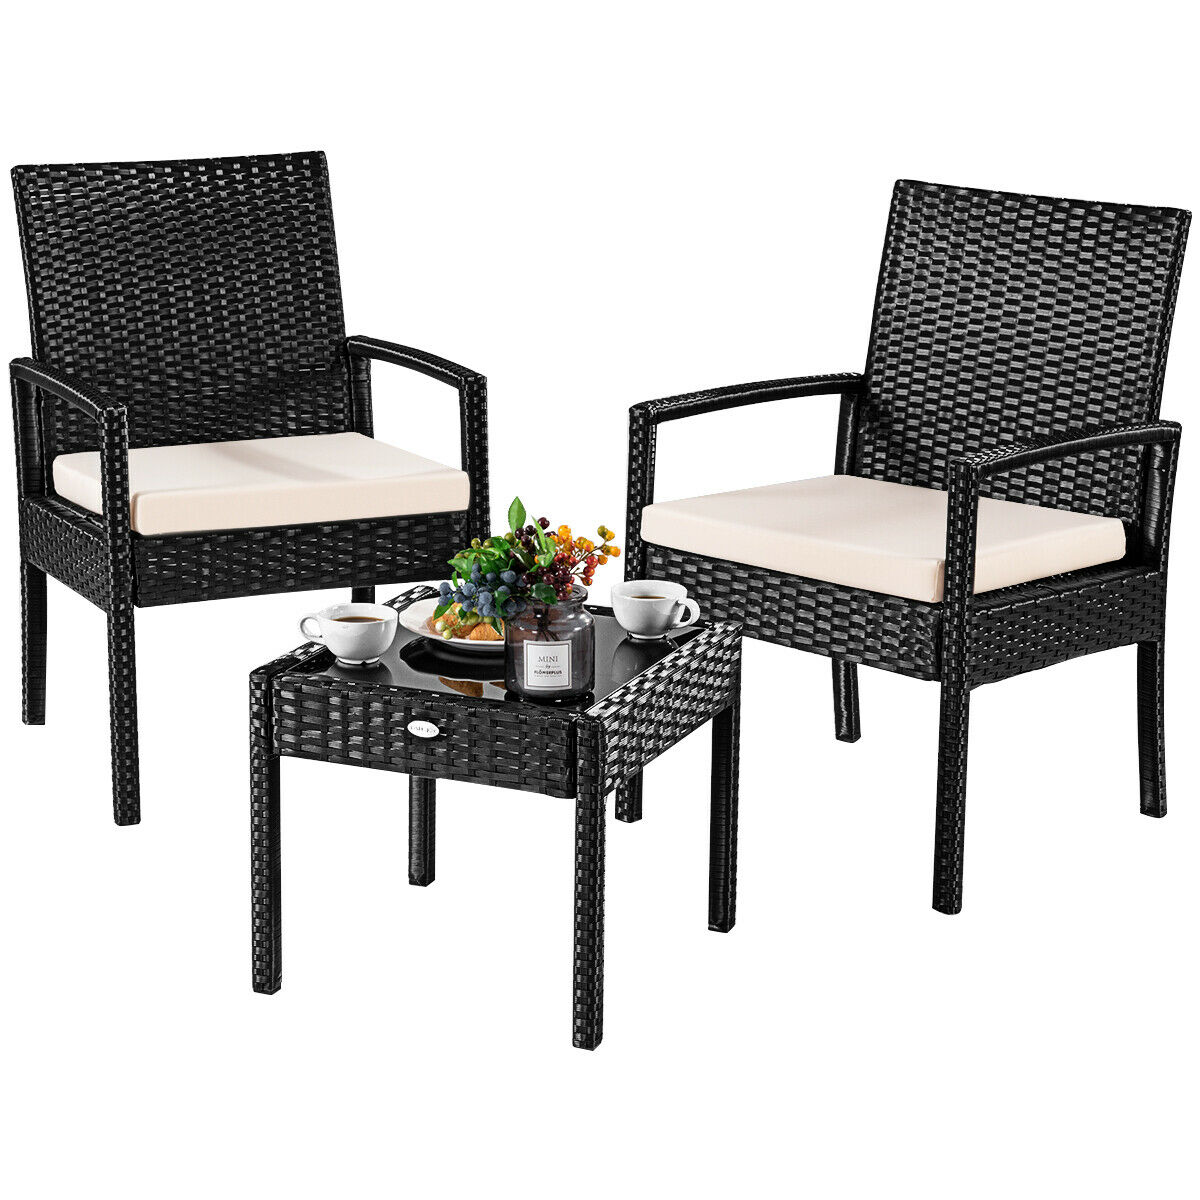 Charmant Costway 3 PS Outdoor Rattan Patio Furniture Set Backyard Garden Furniture  Seat Cushioned